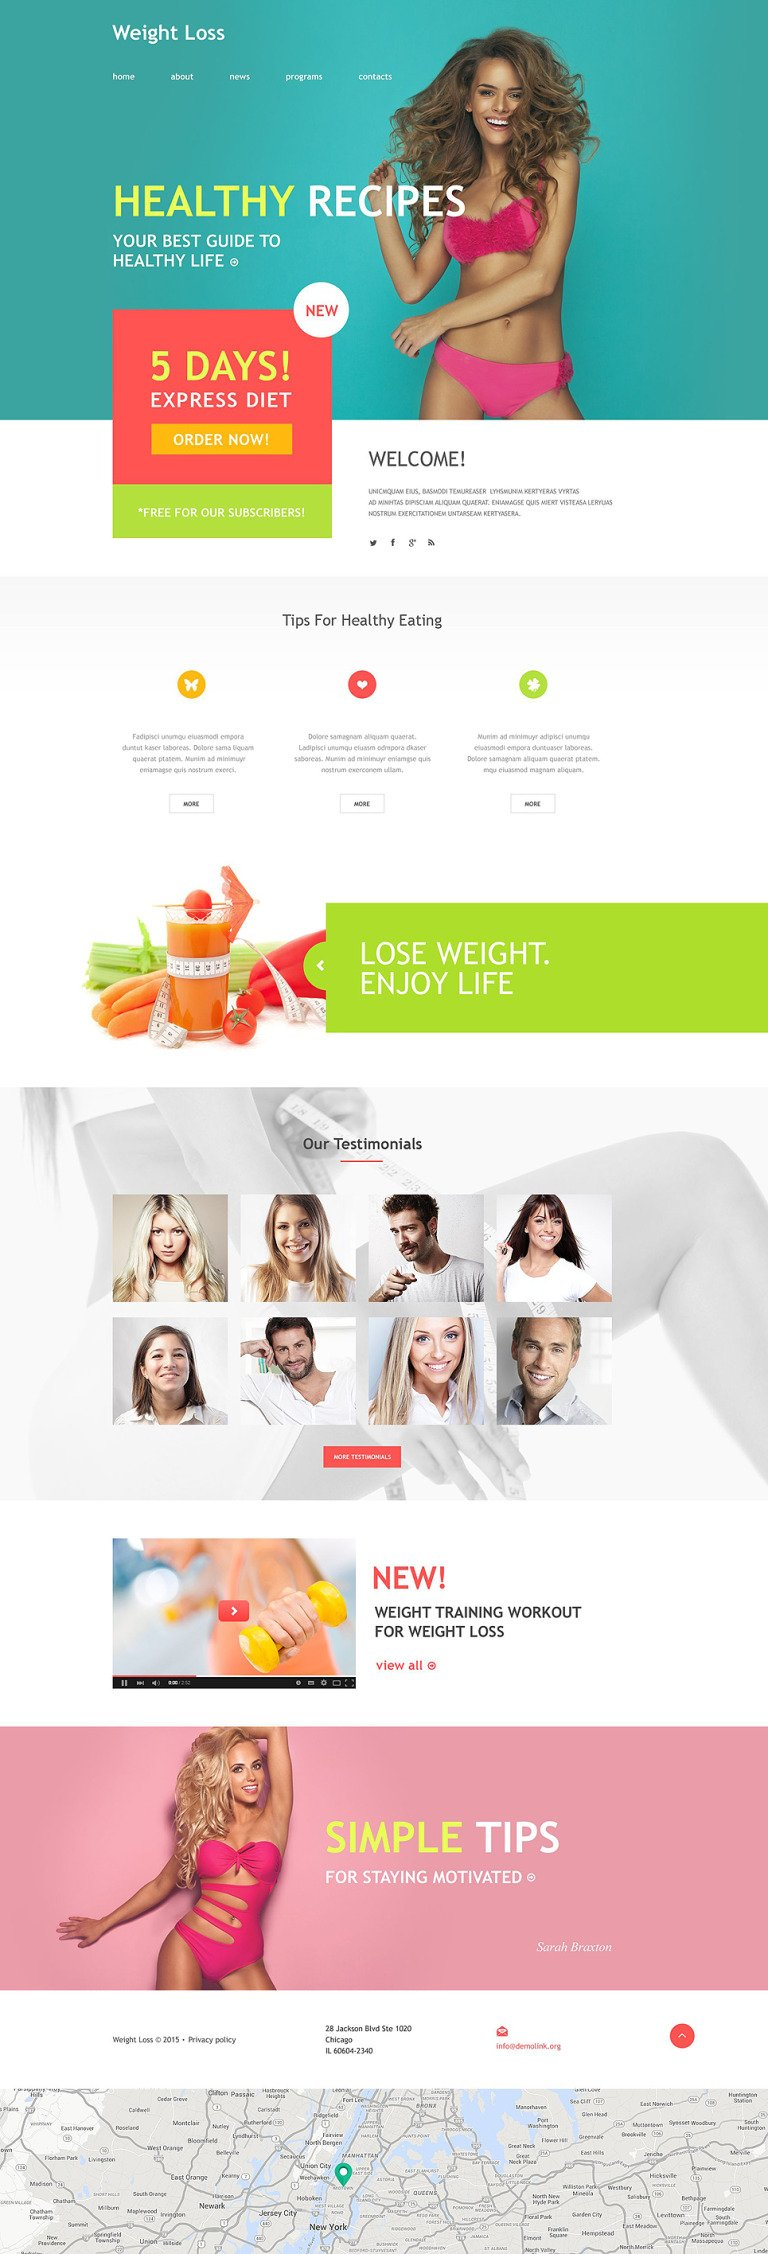 Weight Loss Muse Template New Screenshots BIG